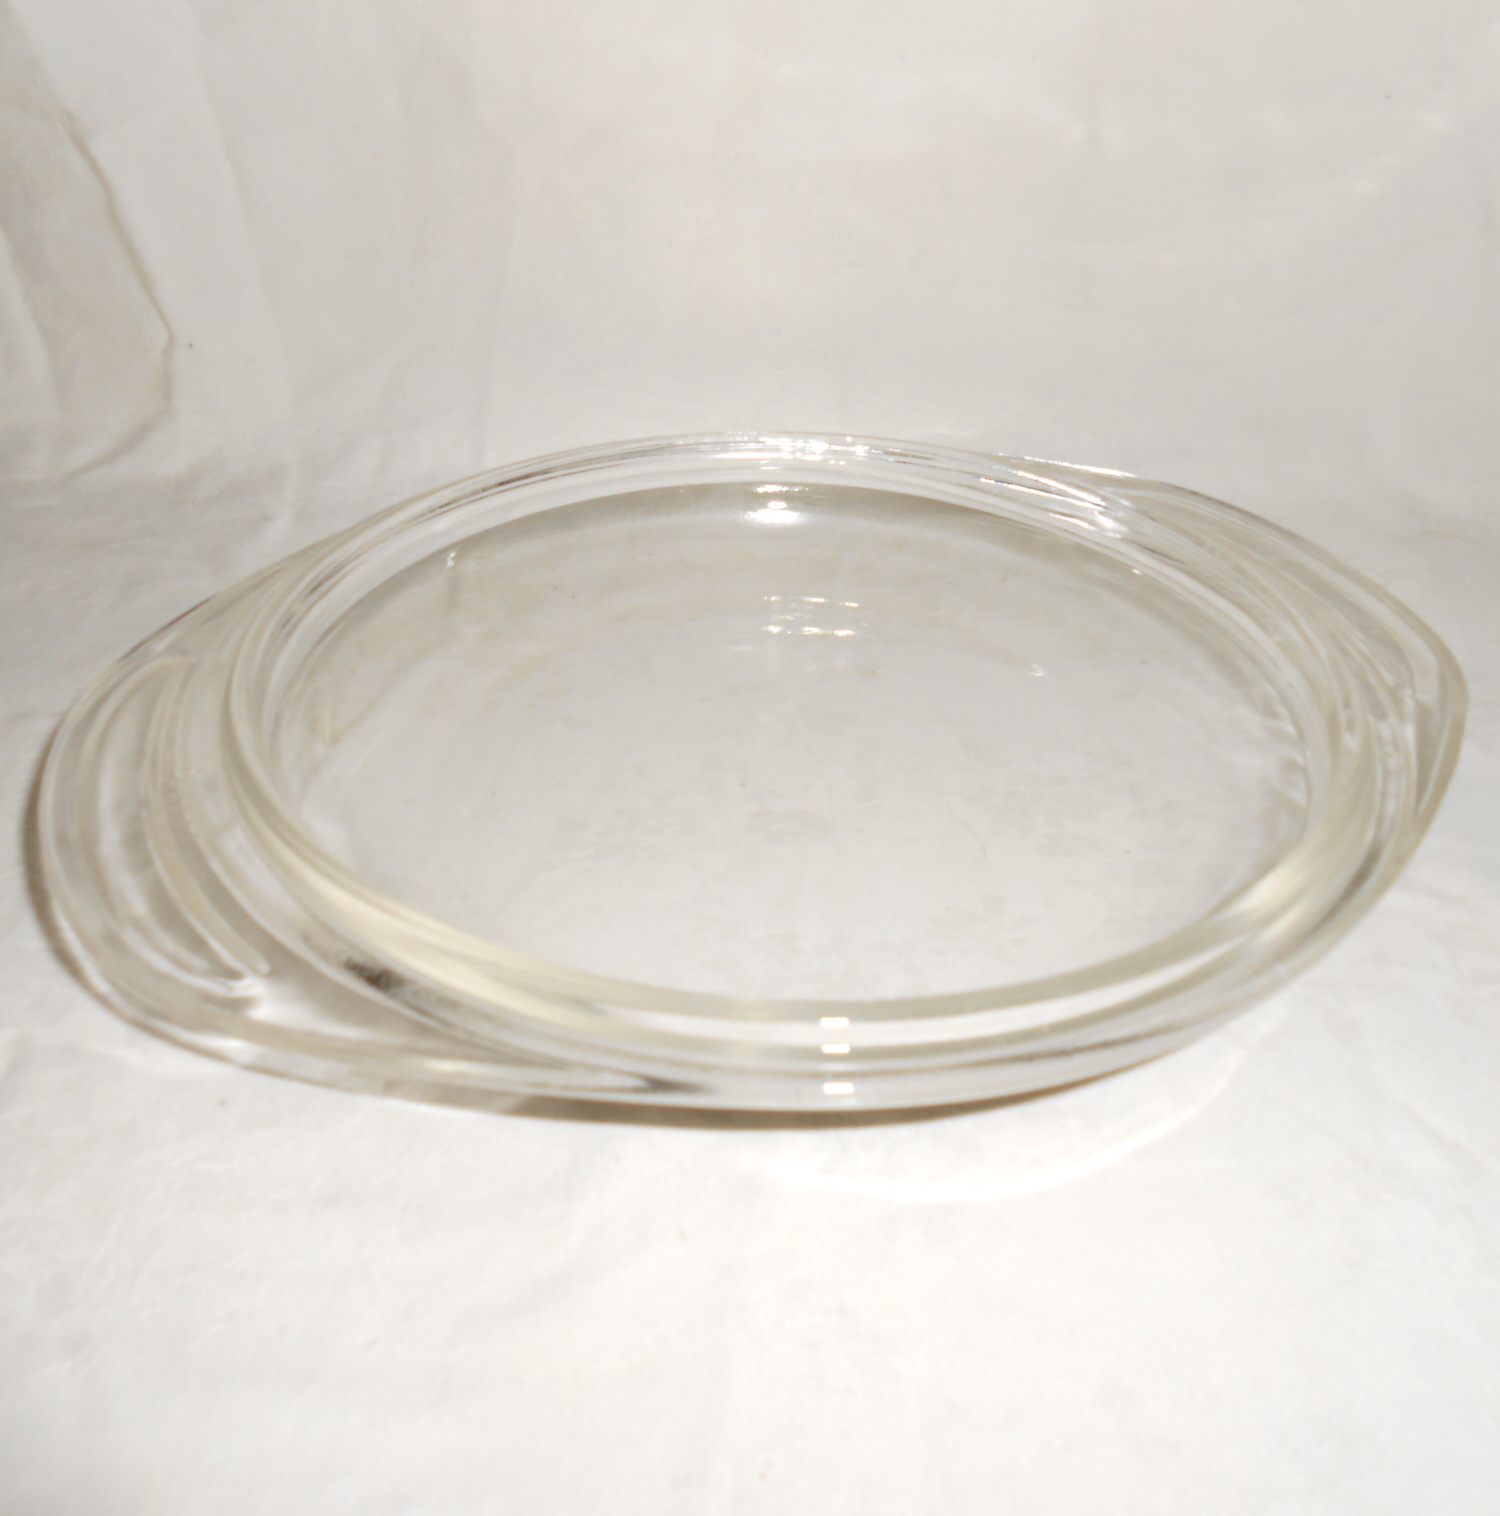 pyrex replacement clear glass - photo #23